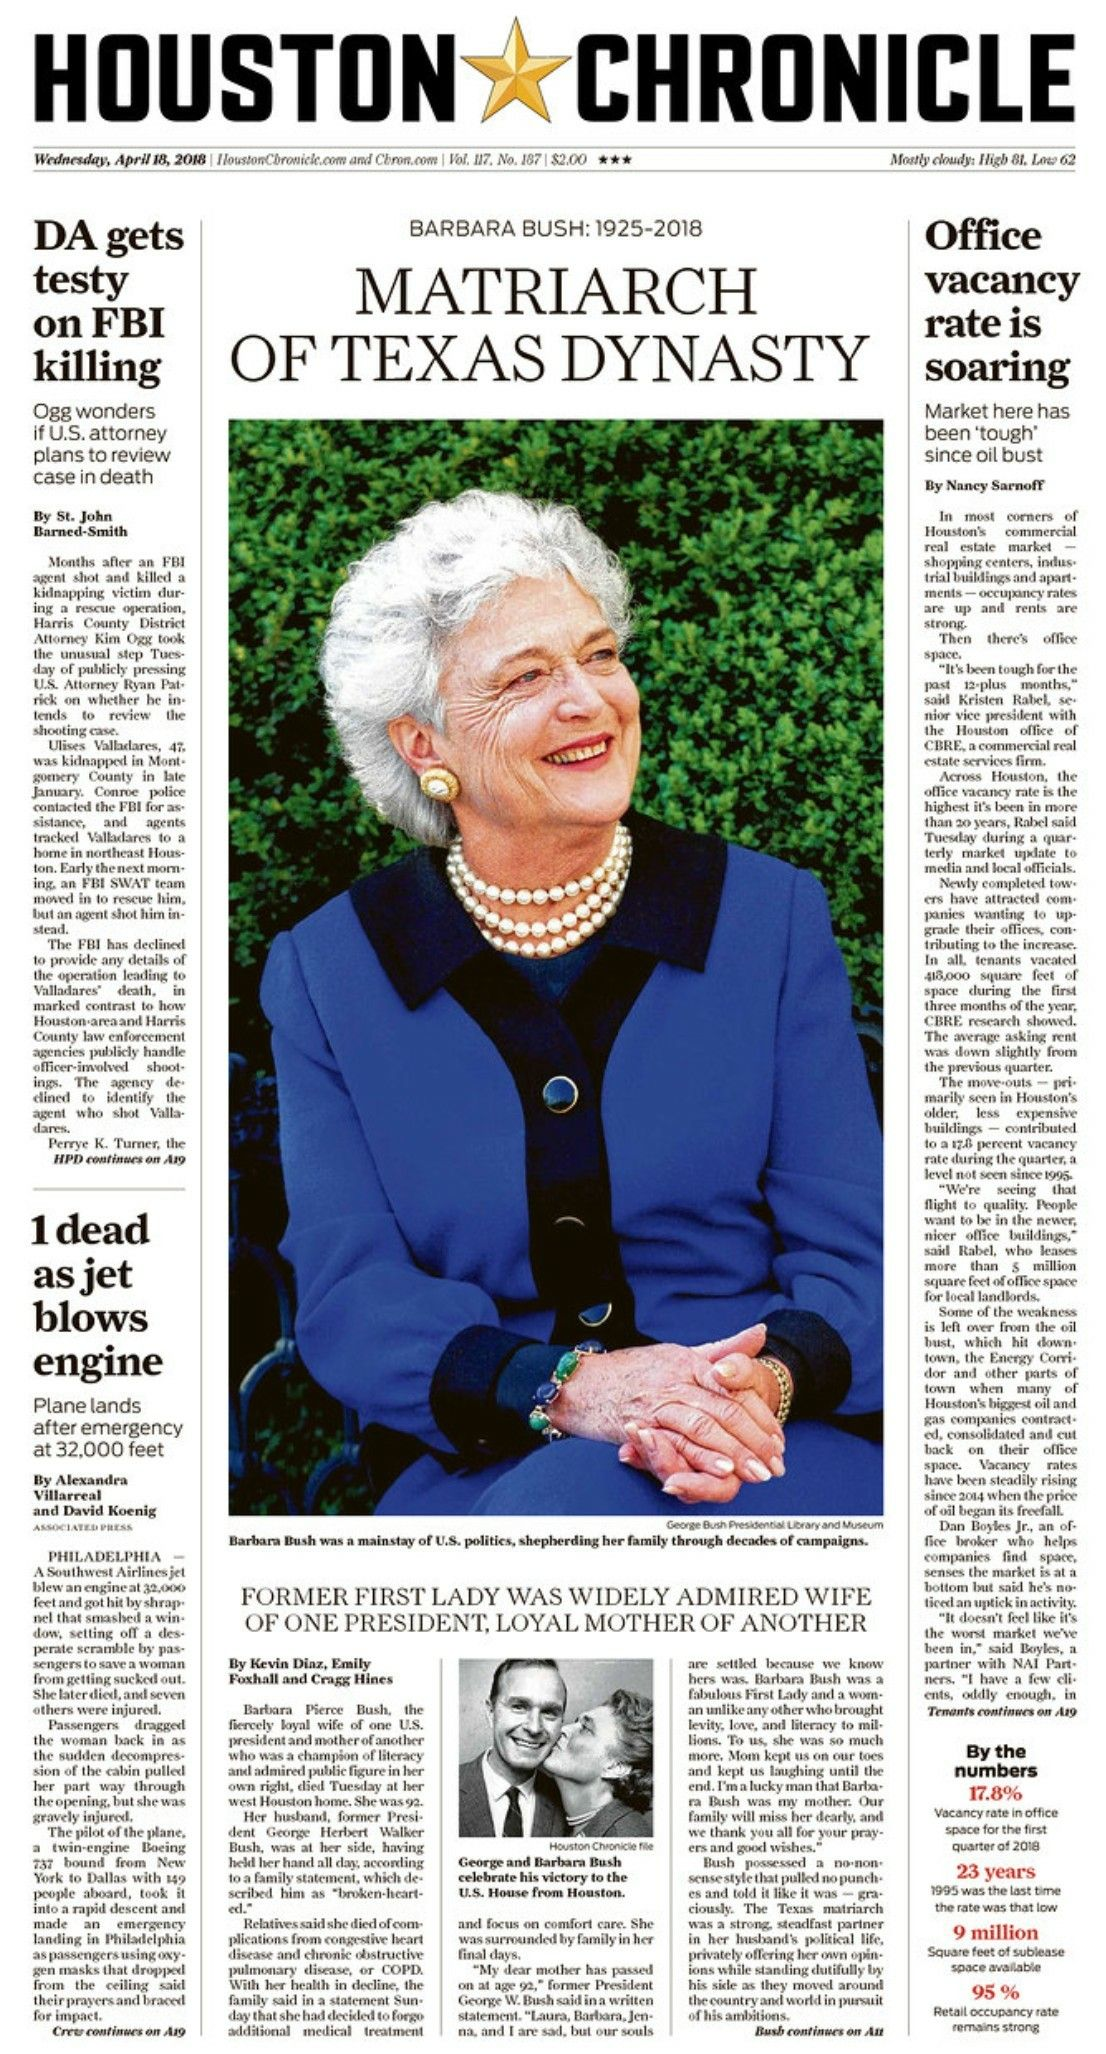 Former First-Lady Barbara Bush dies at age 92. Barbara Bush was married to former President George H.W. Bush. She was also the mother of former President George W. Bush and Governor Jeb Bush. (April 17, 2018)